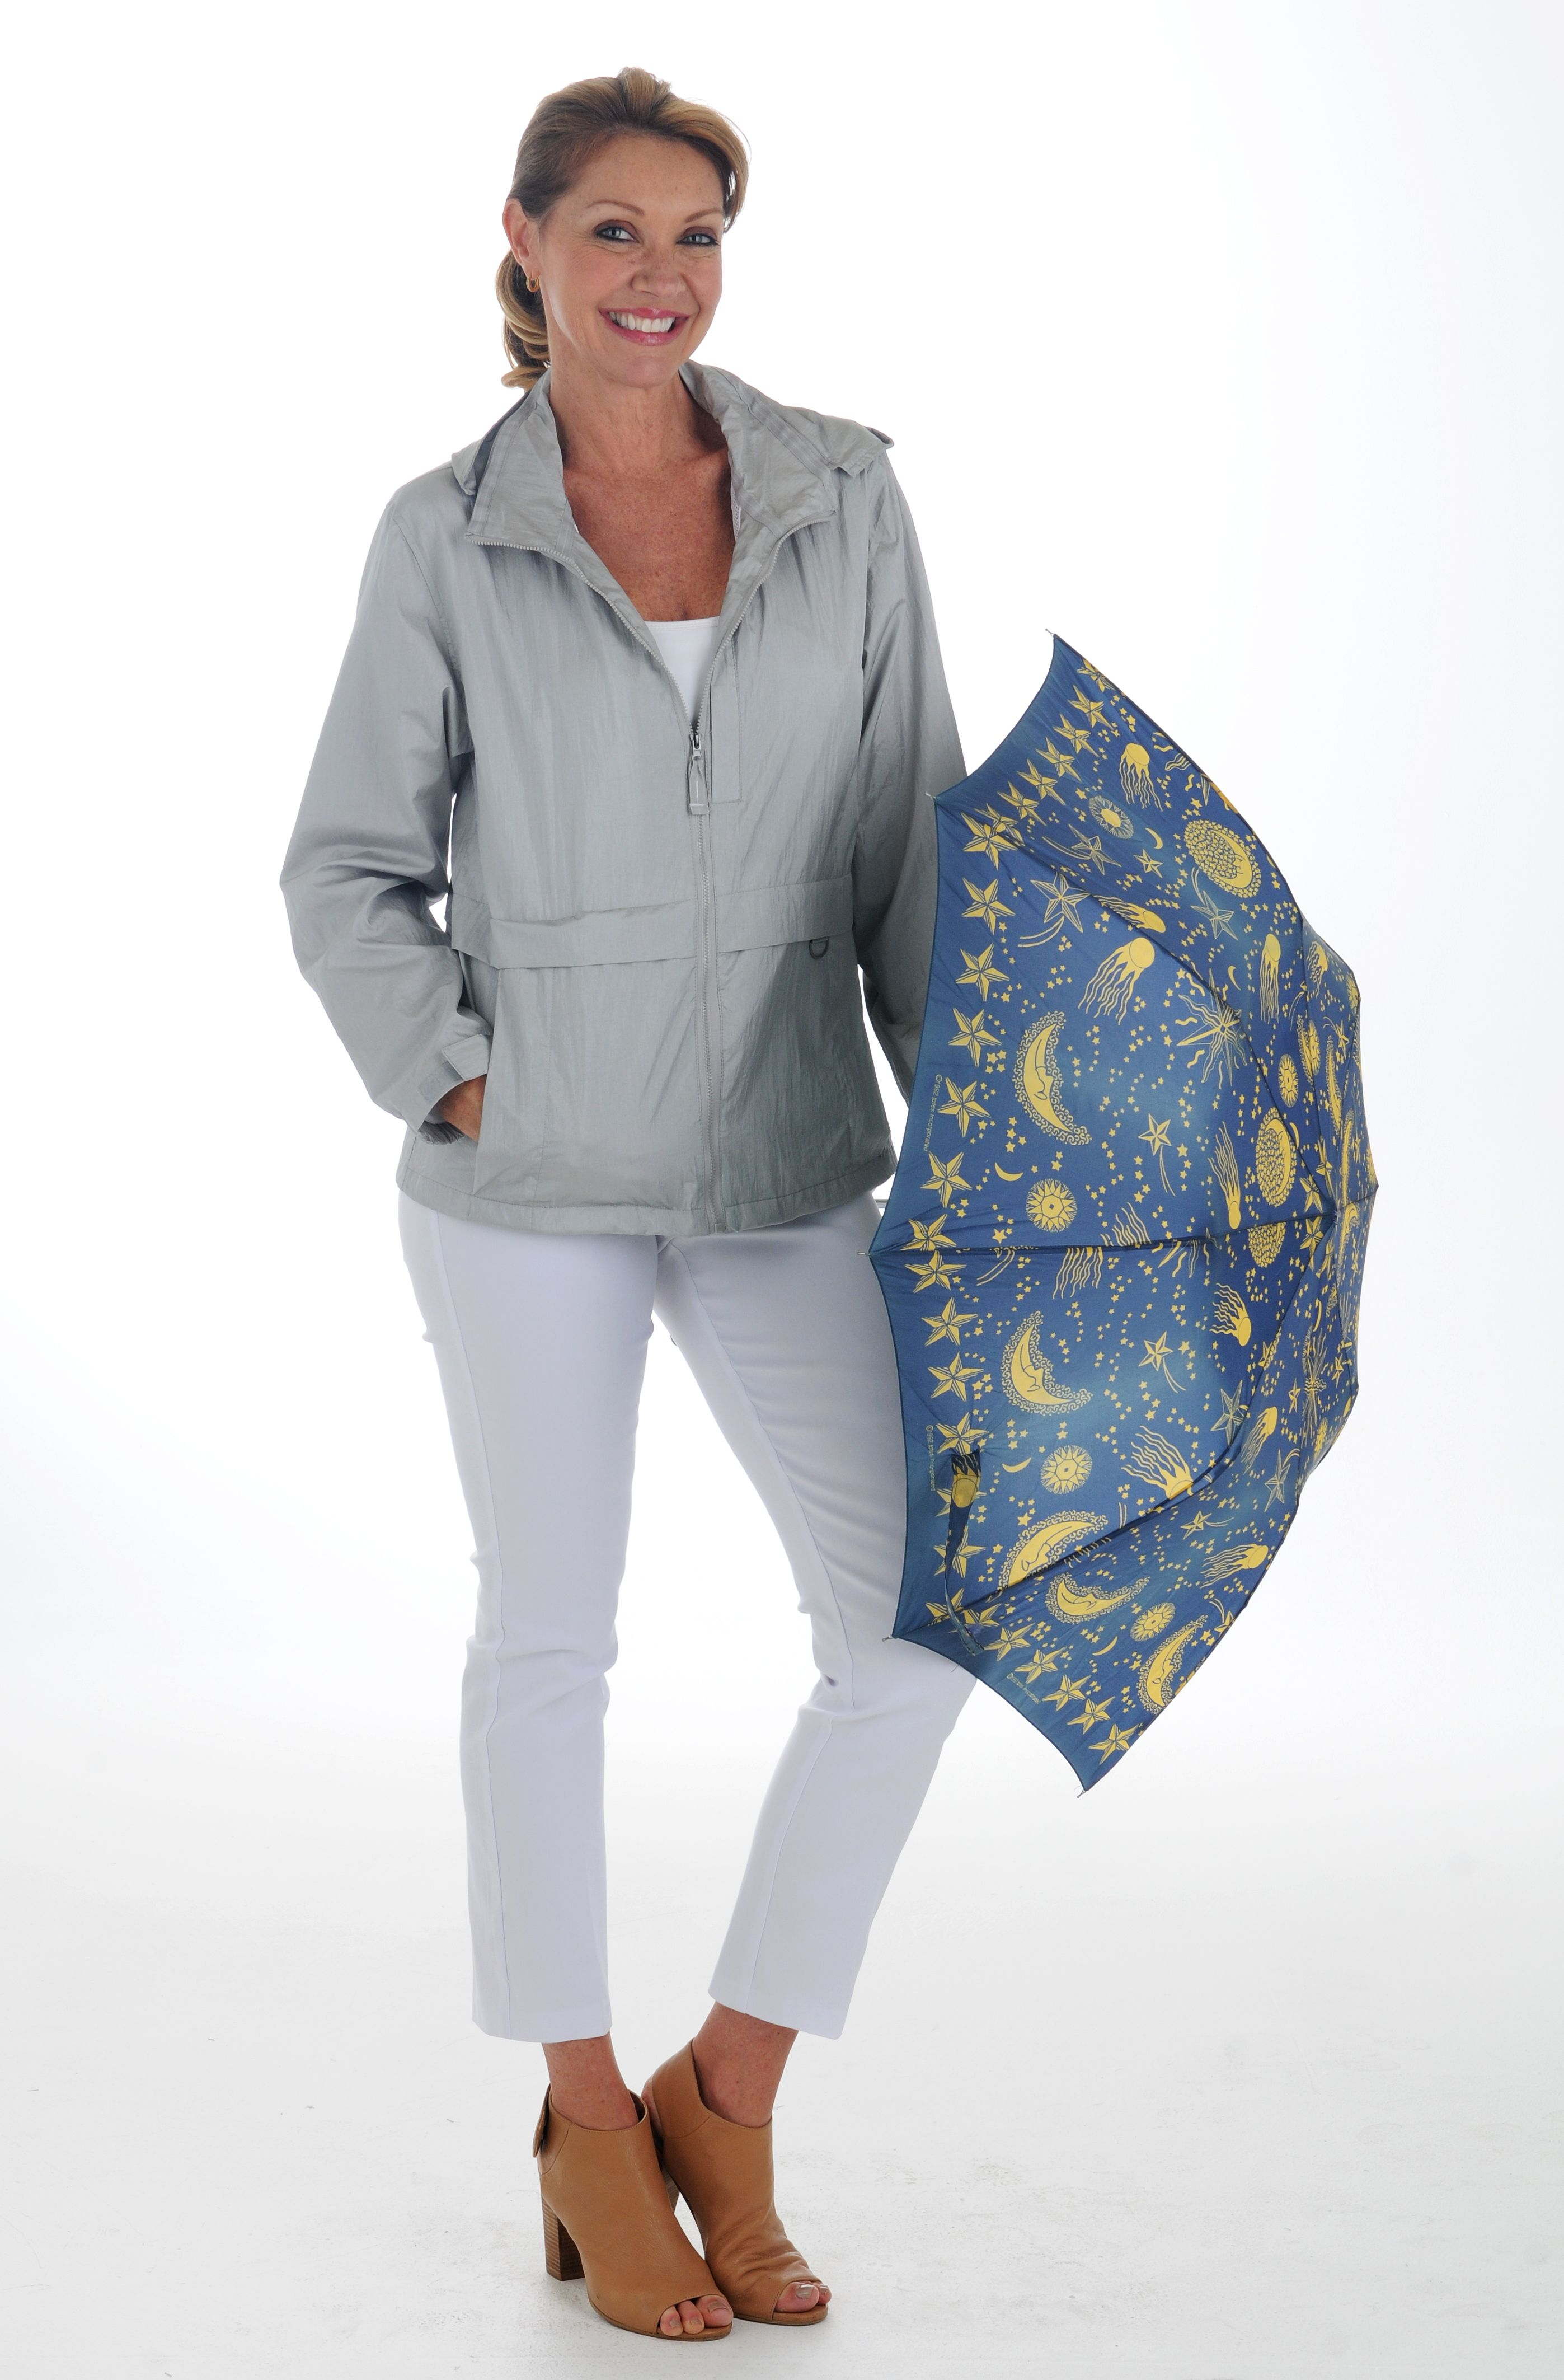 When summer comes in Florida, so do the afternoon showers. Don't be caught unprepared, grab this lightweight nylon jacket by Neyelle. Perfect for warm summer rain storms.